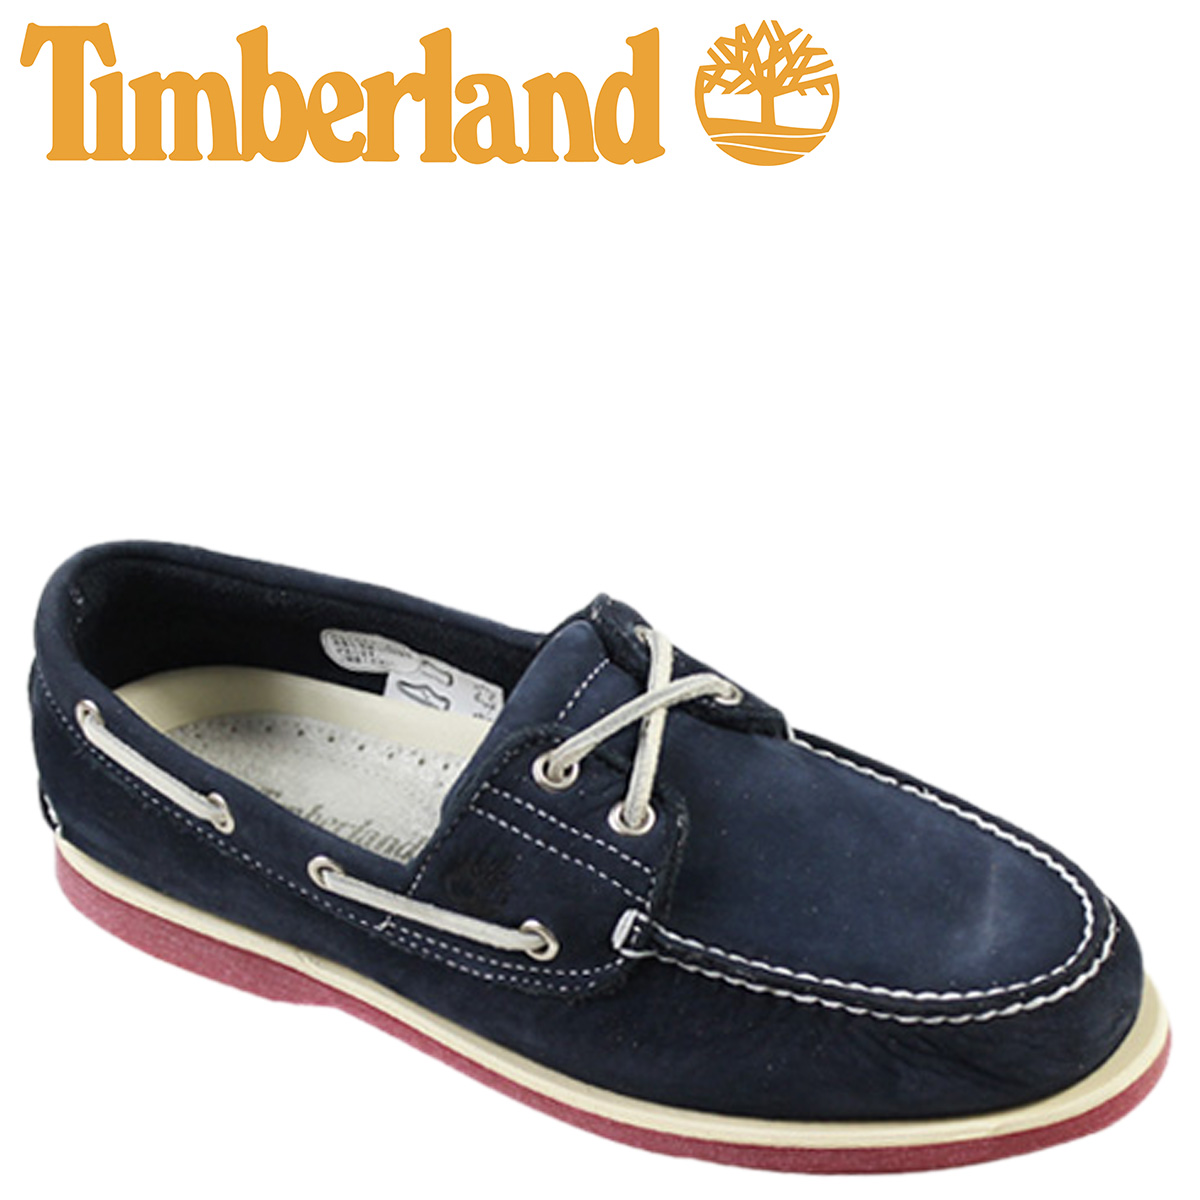 Timberland Timberland icon classical music 2 hall boat shoes ICON CLASSIC 2 EYE leather deck shoes 6,305A navy men